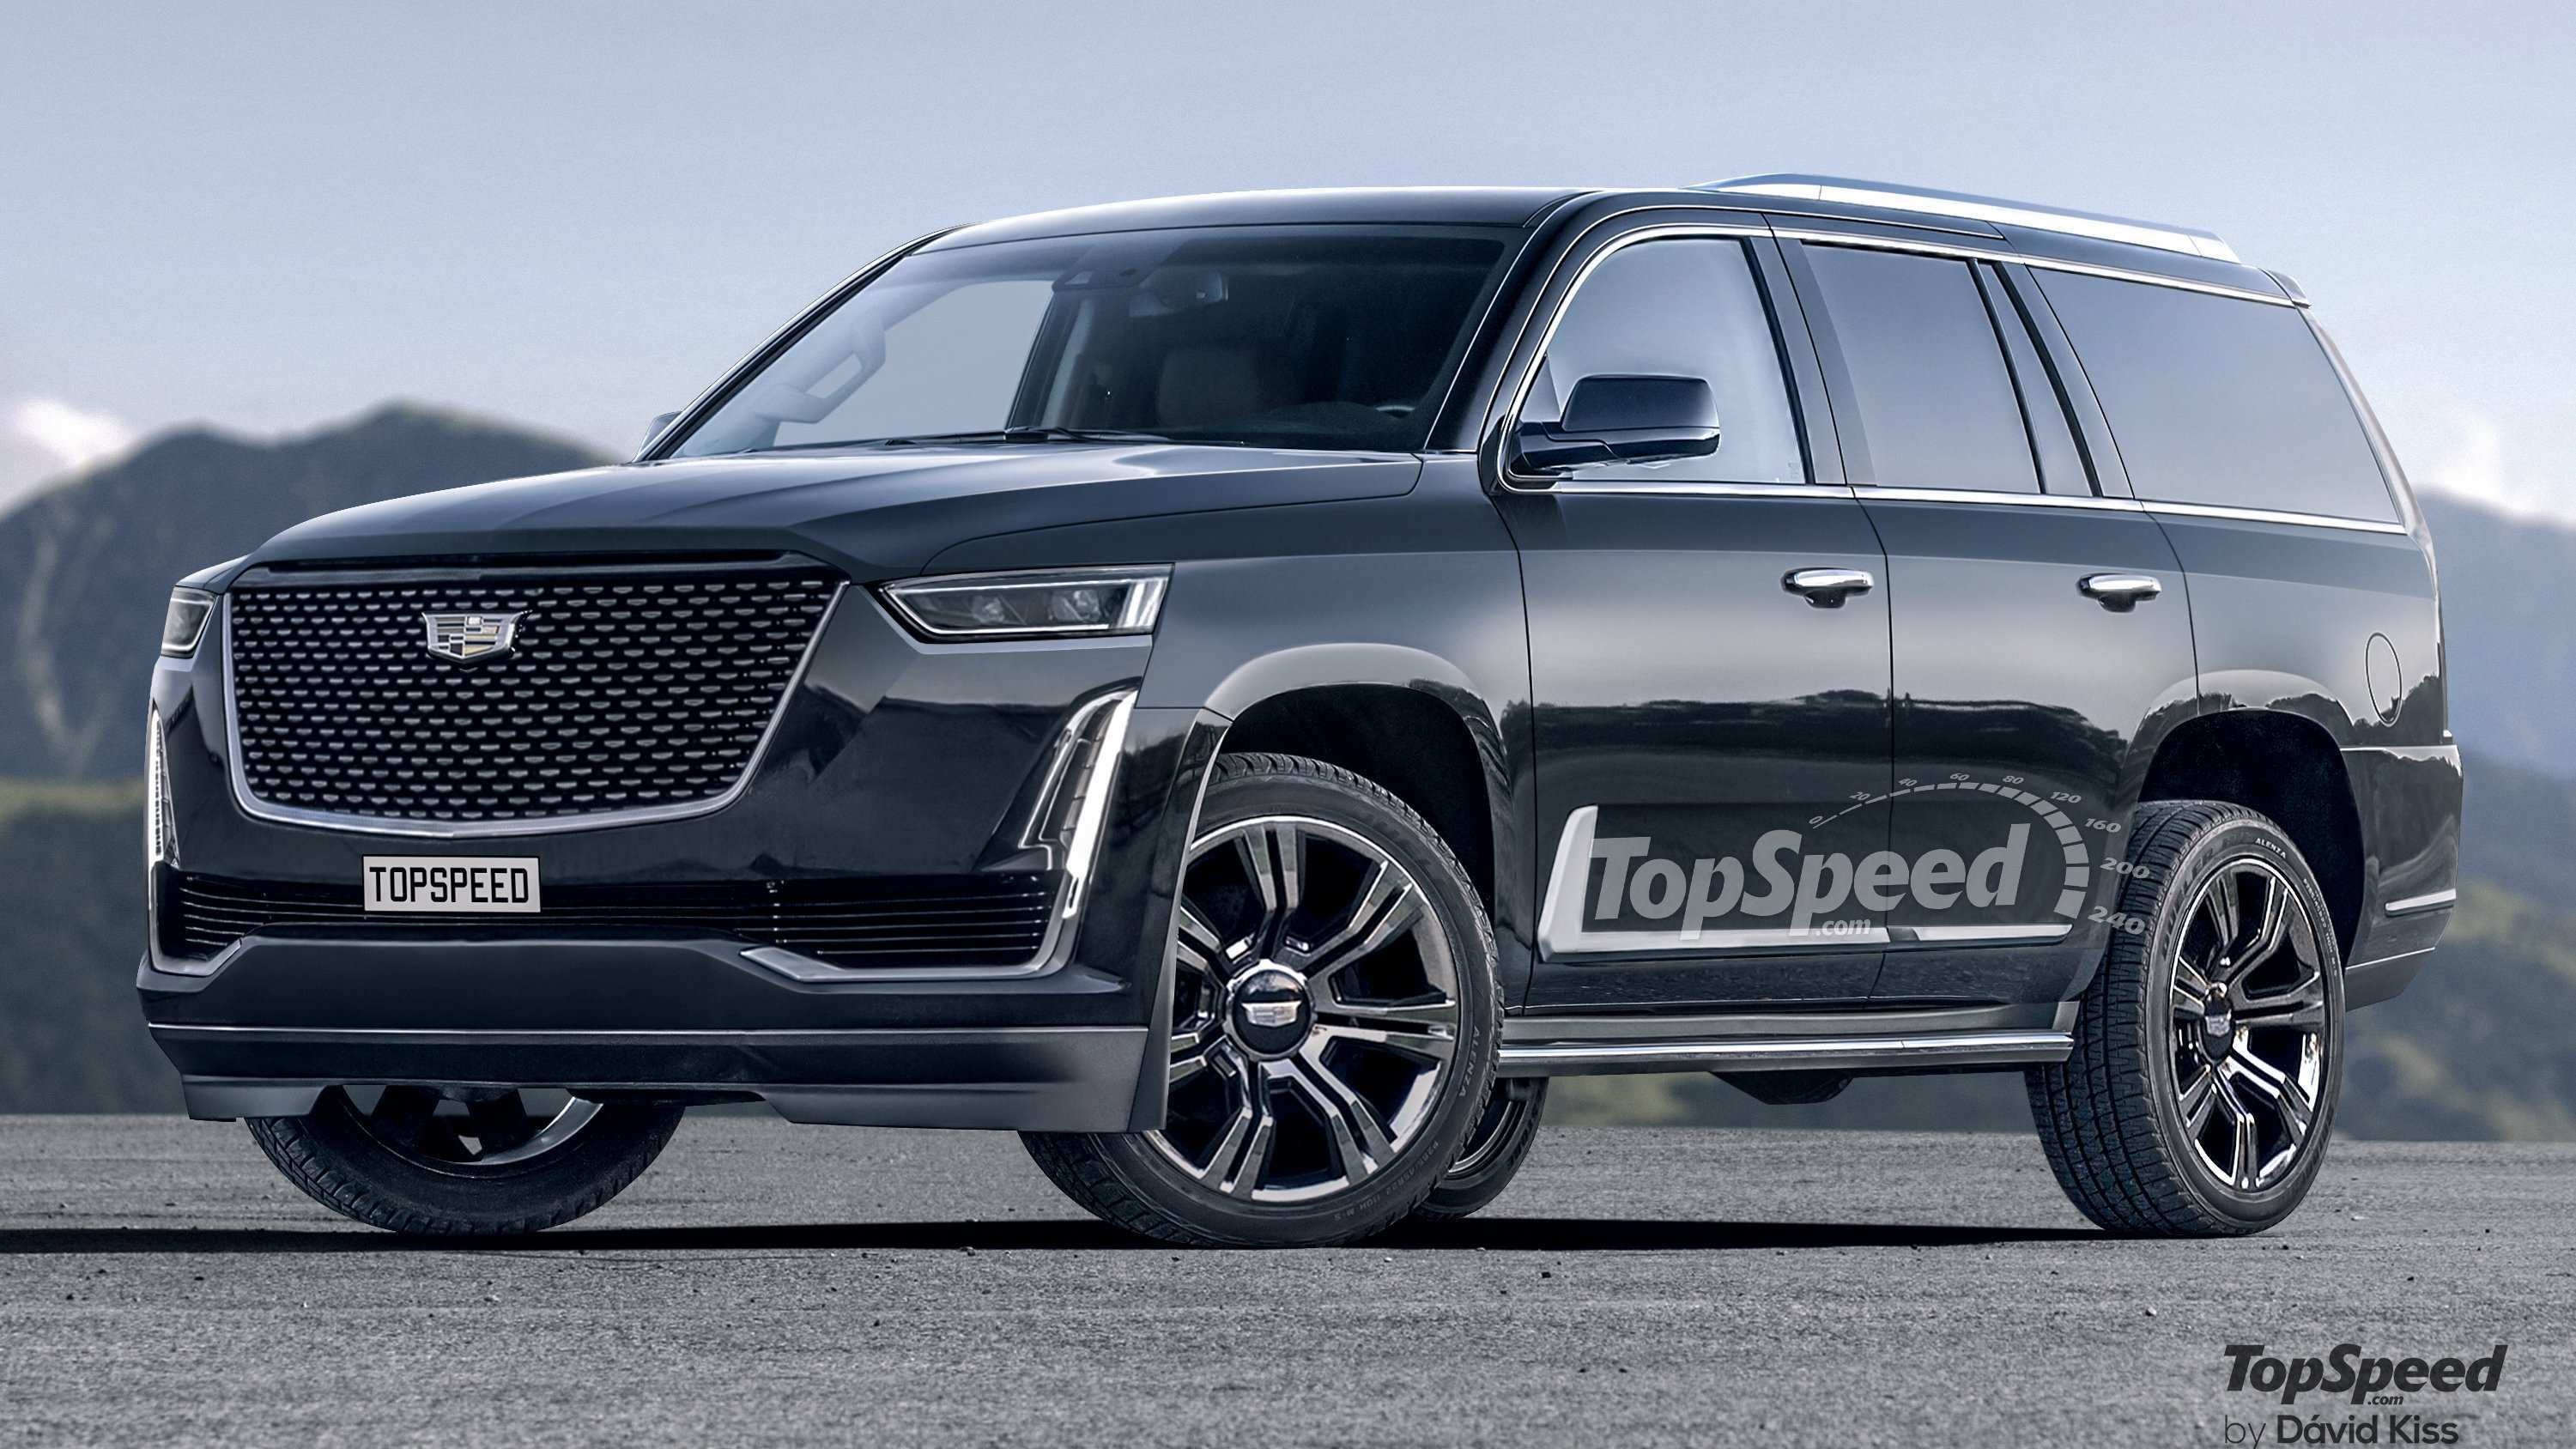 69 Great 2020 Escalade Reviews with 2020 Escalade